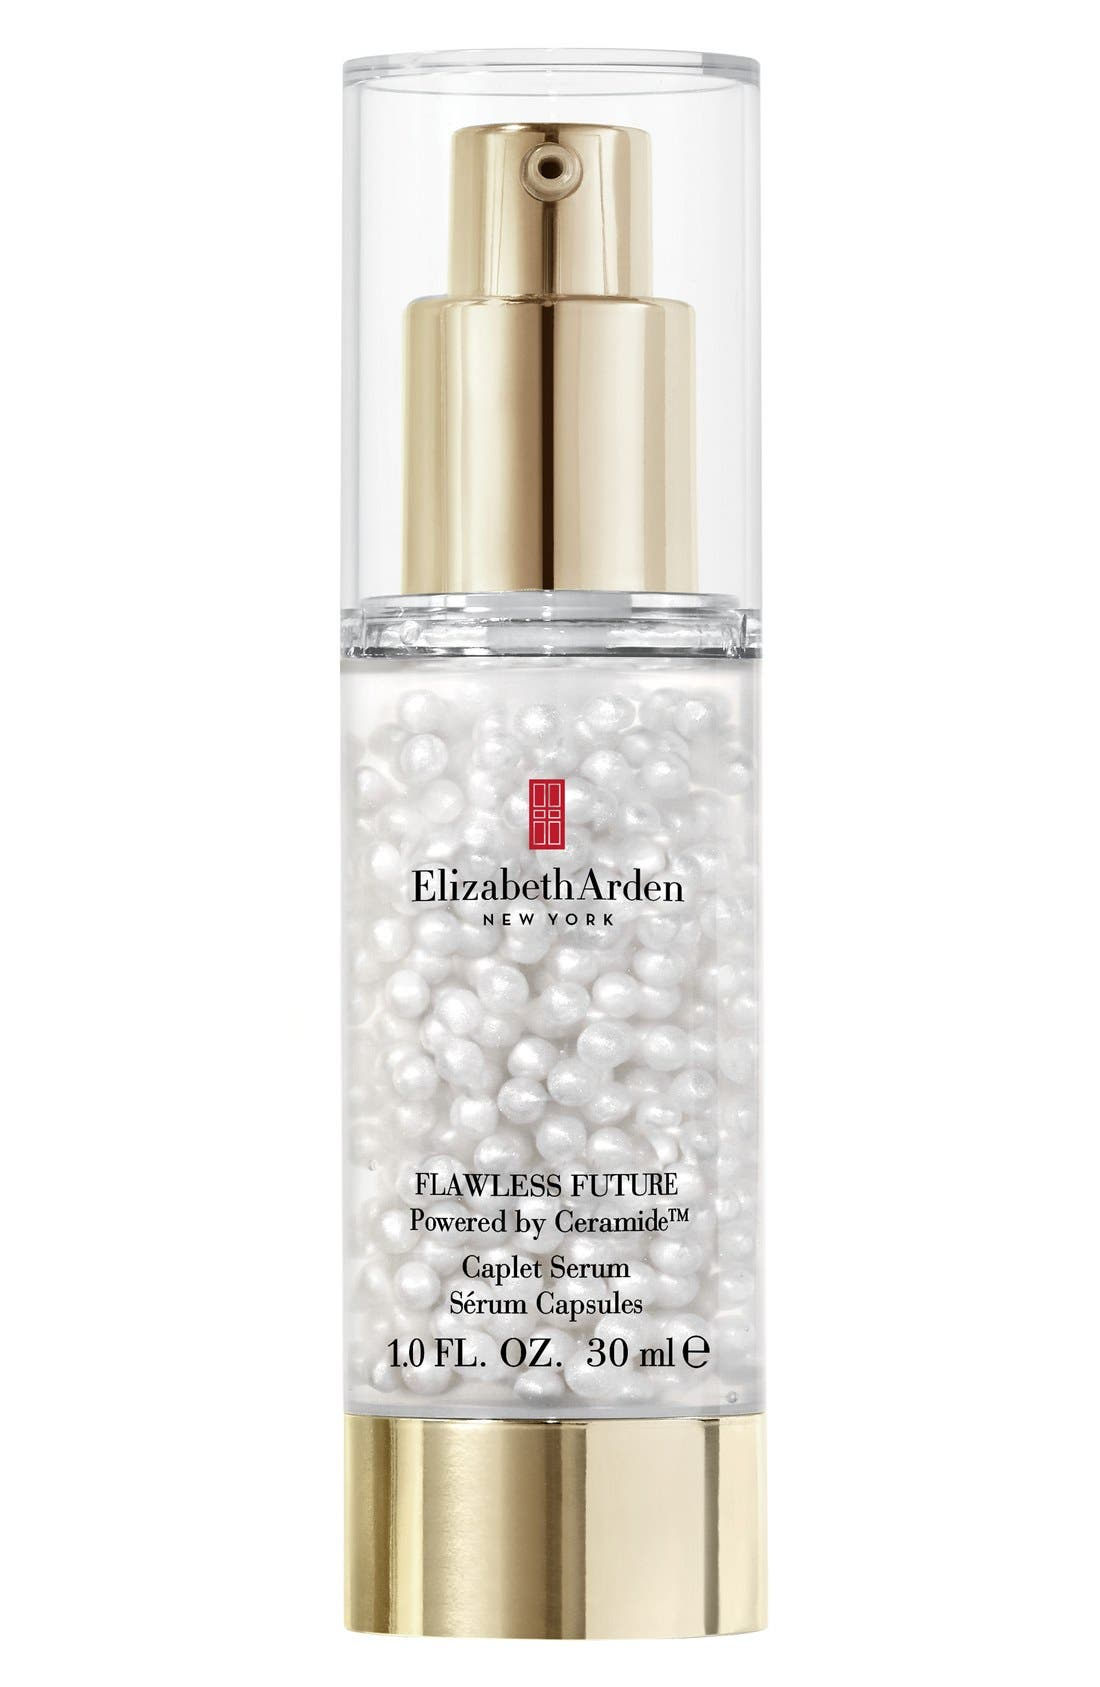 Elizabeth Arden FLAWLESS FUTURE Powered by Ceramide™ Caplet Serum